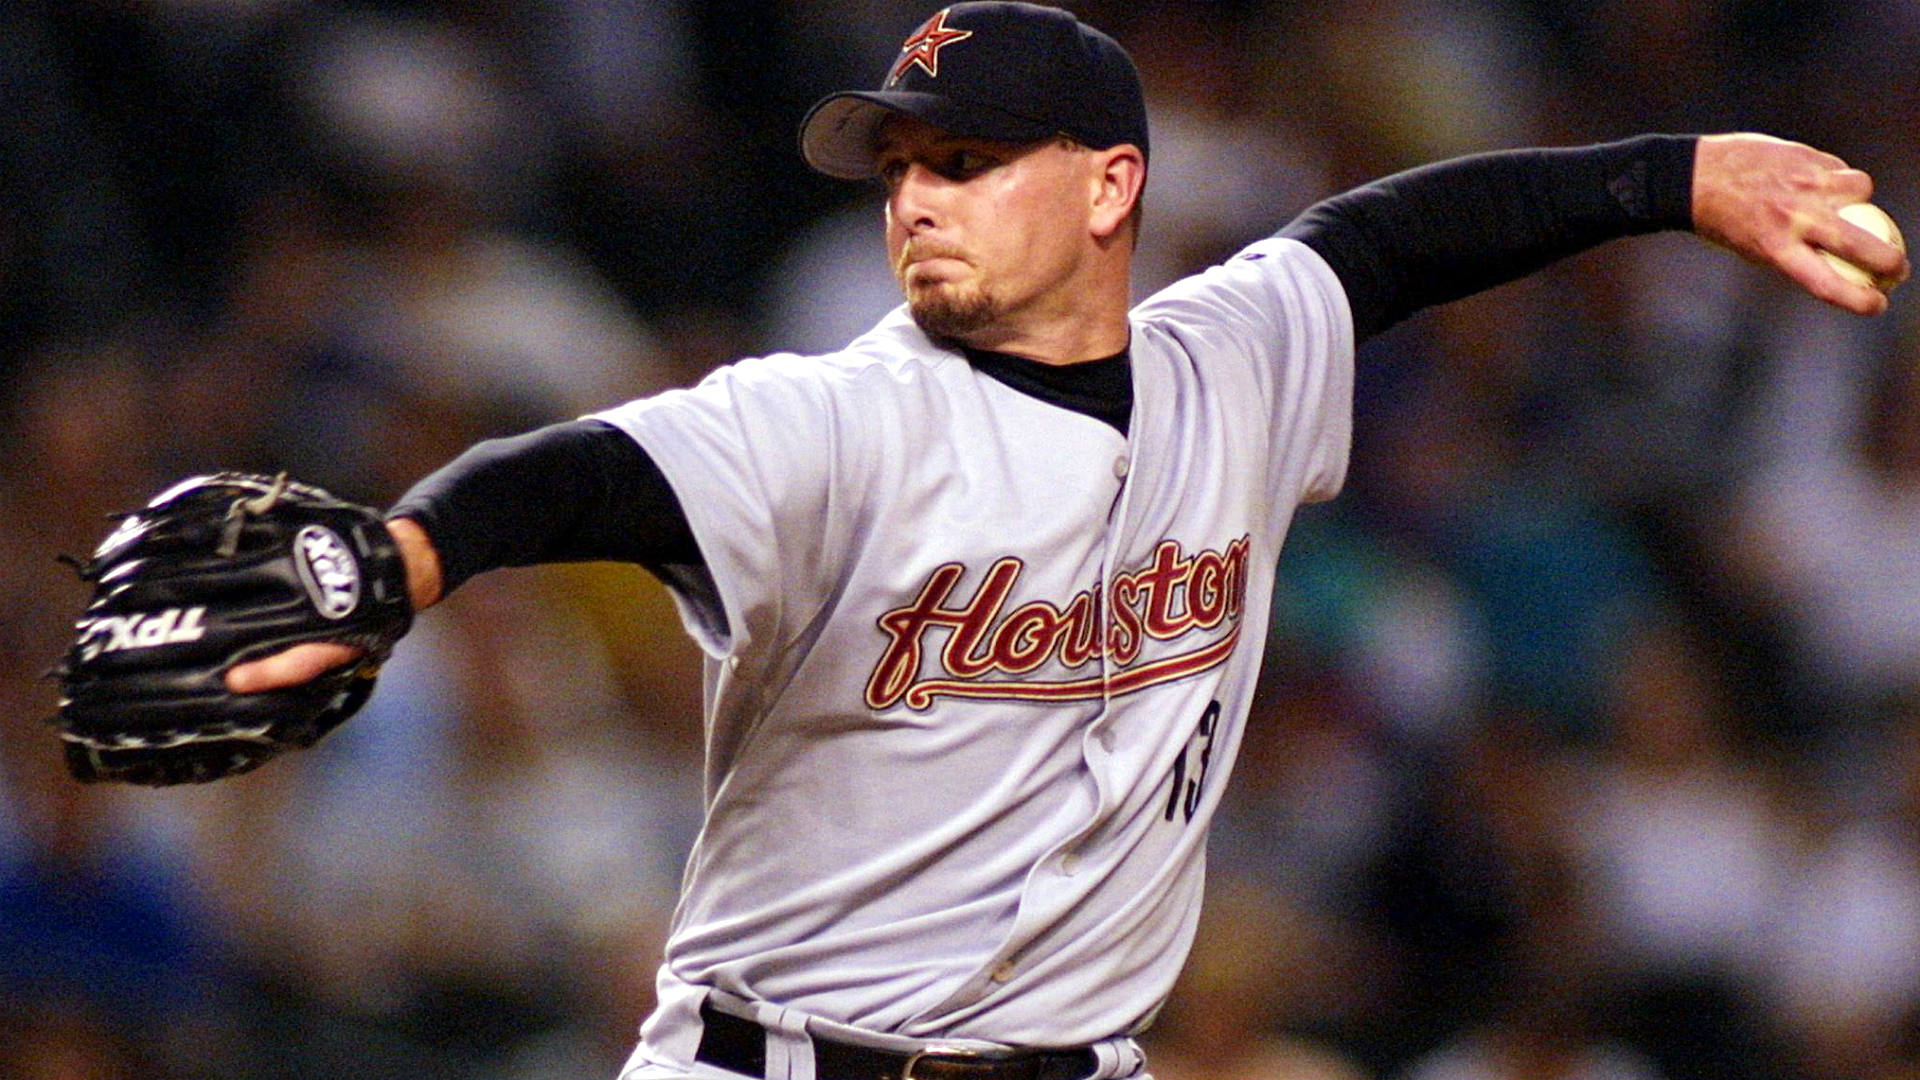 Billywagner-getty-ftr-121317jpg_1xxf3og0cqz211fzl1ferfmu96